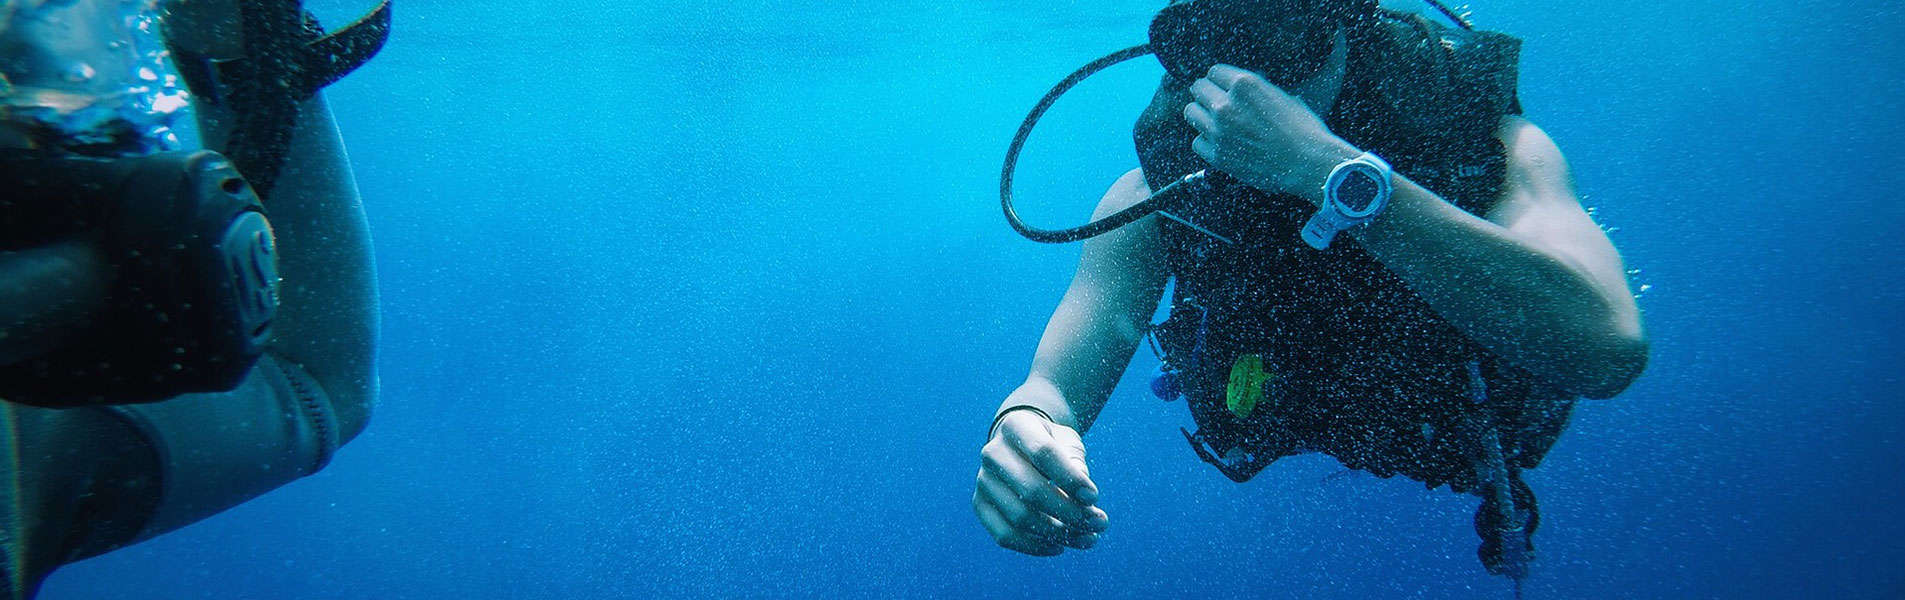 Diver with dive watch